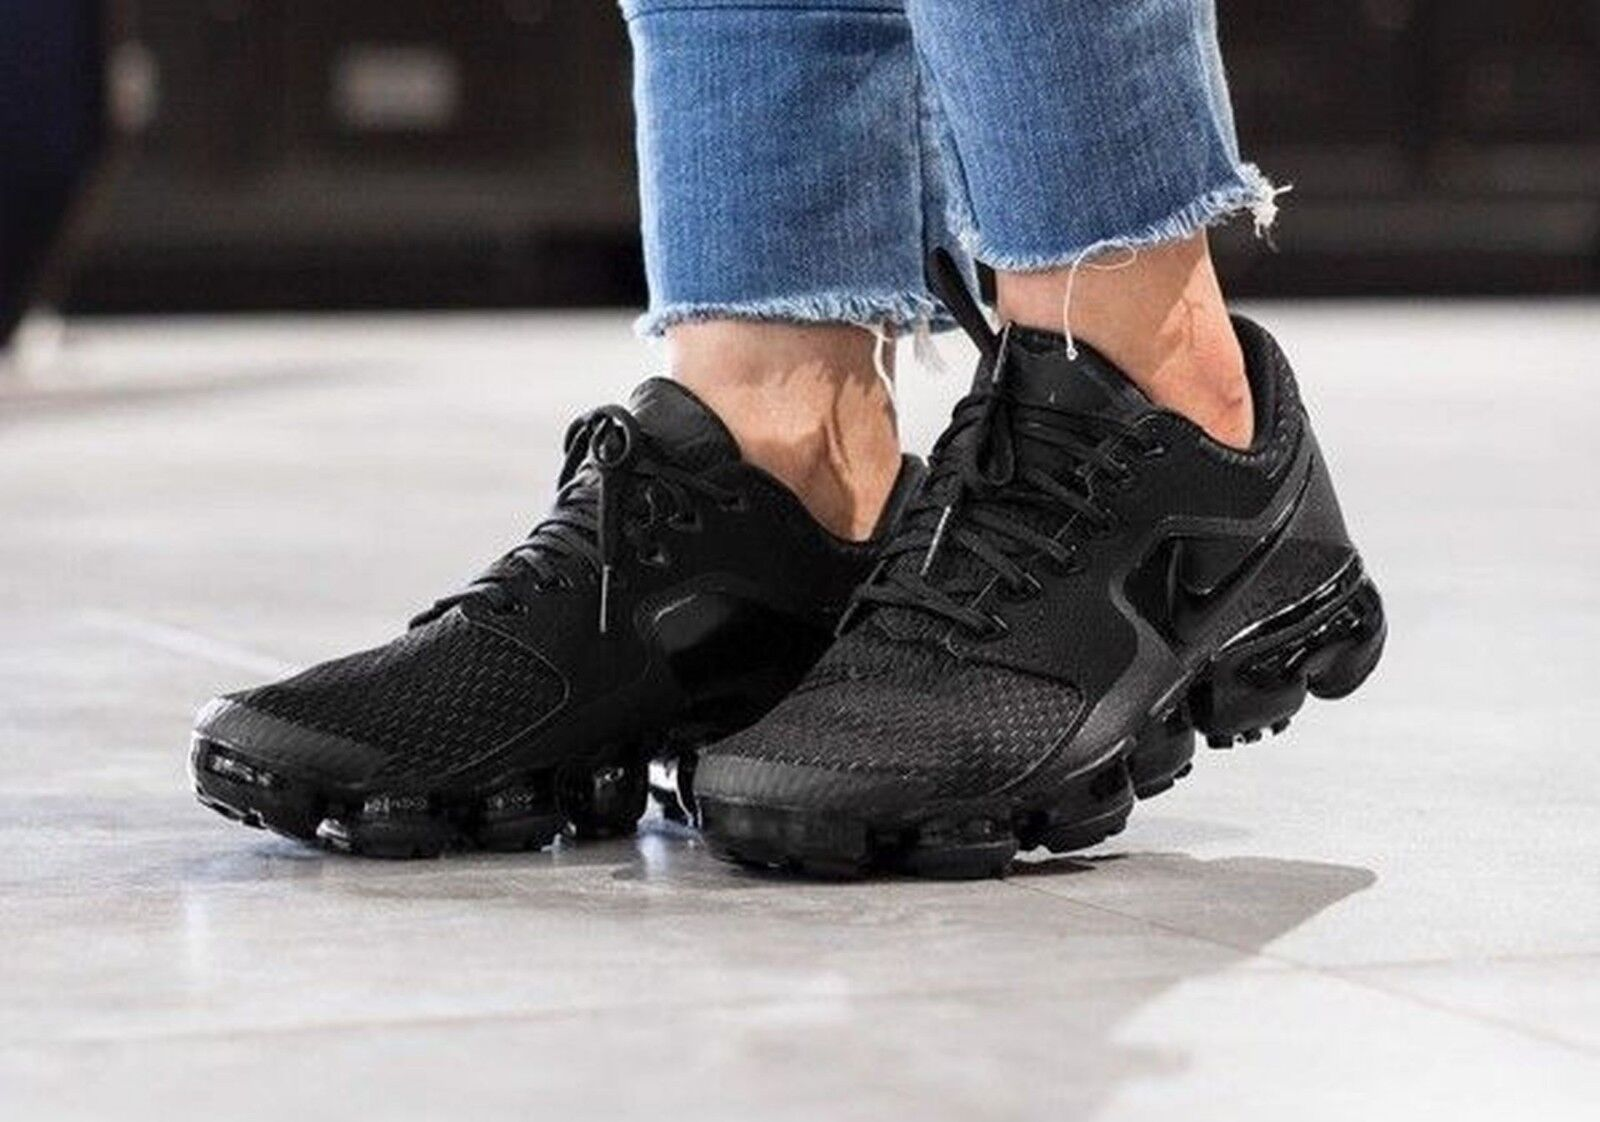 Nike Air VaporMax AH9045-002 Black Anthracite Running Shoes Wmn Size 5.5